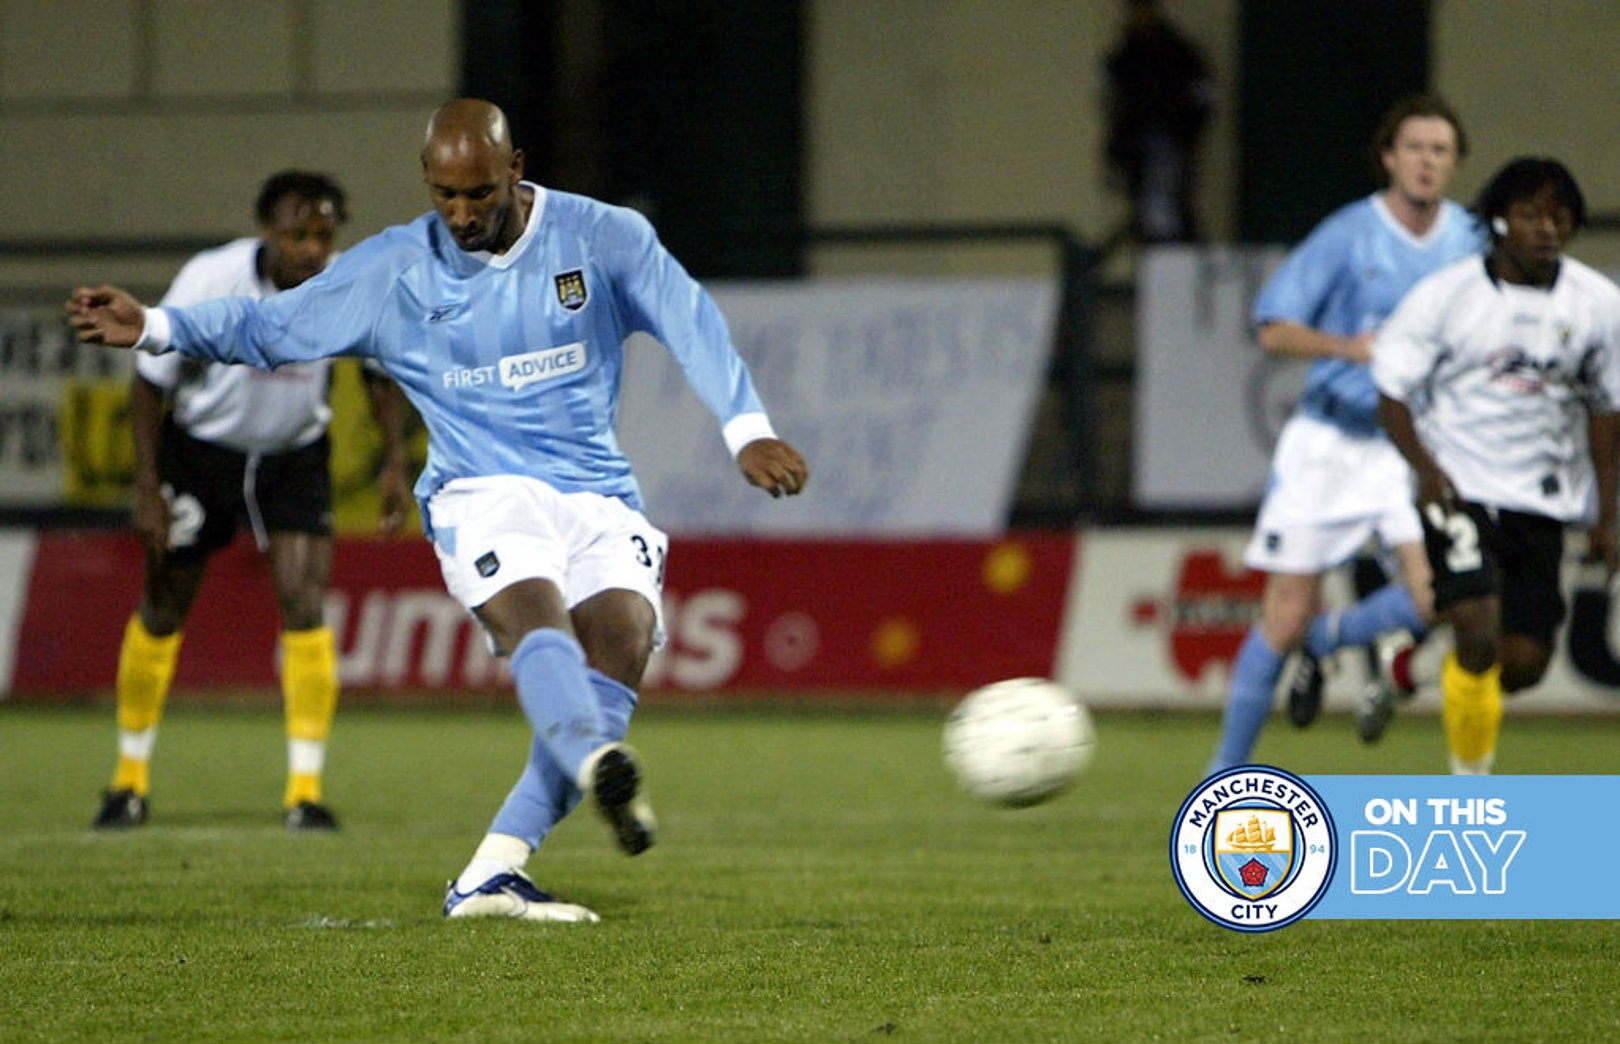 On This Day: Anelka's spot on in Europe, City hit pole position